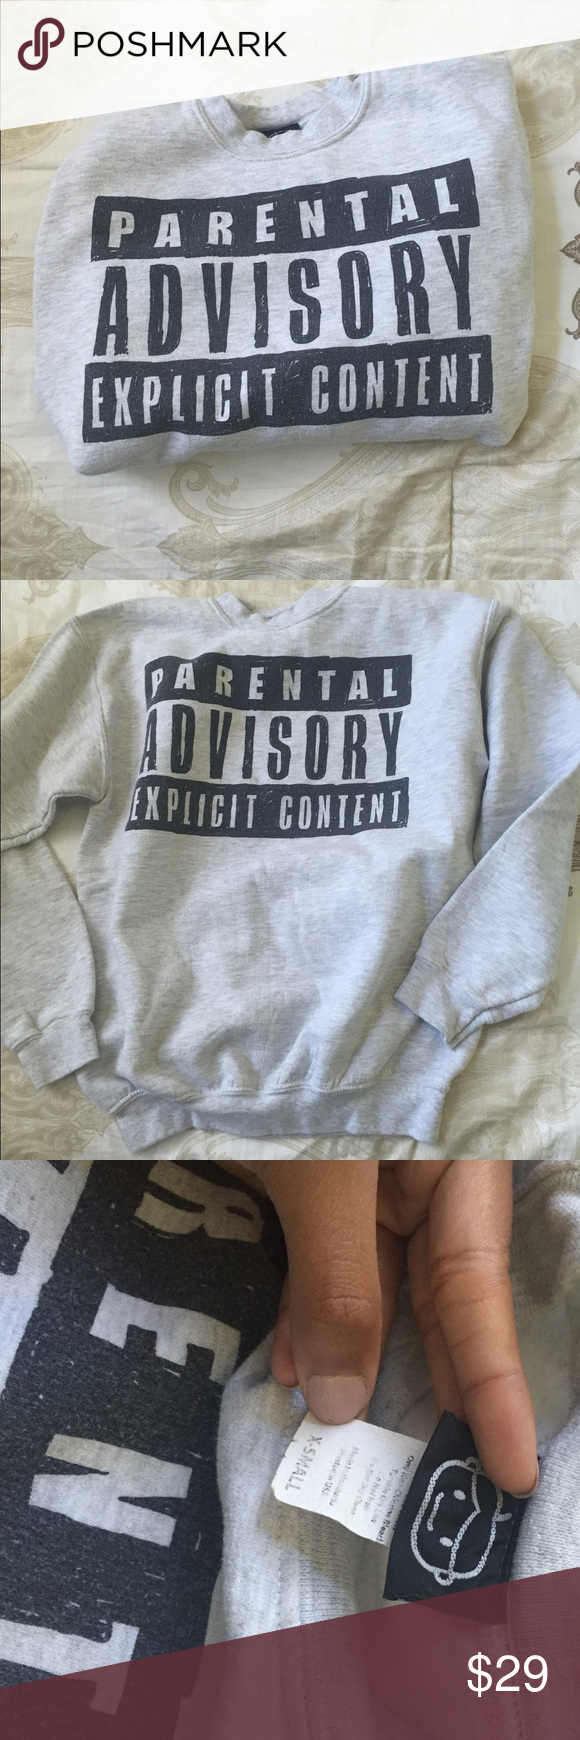 Parental Advisory Hoddie really cute crewneck, no hood. very stylish. no trades, no lowest! I'll accpet offers :) no flaws. hardly worn. heather grey and black. ordered online from urban outfitters Urban Outfitters Sweaters Crew & Scoop Necks